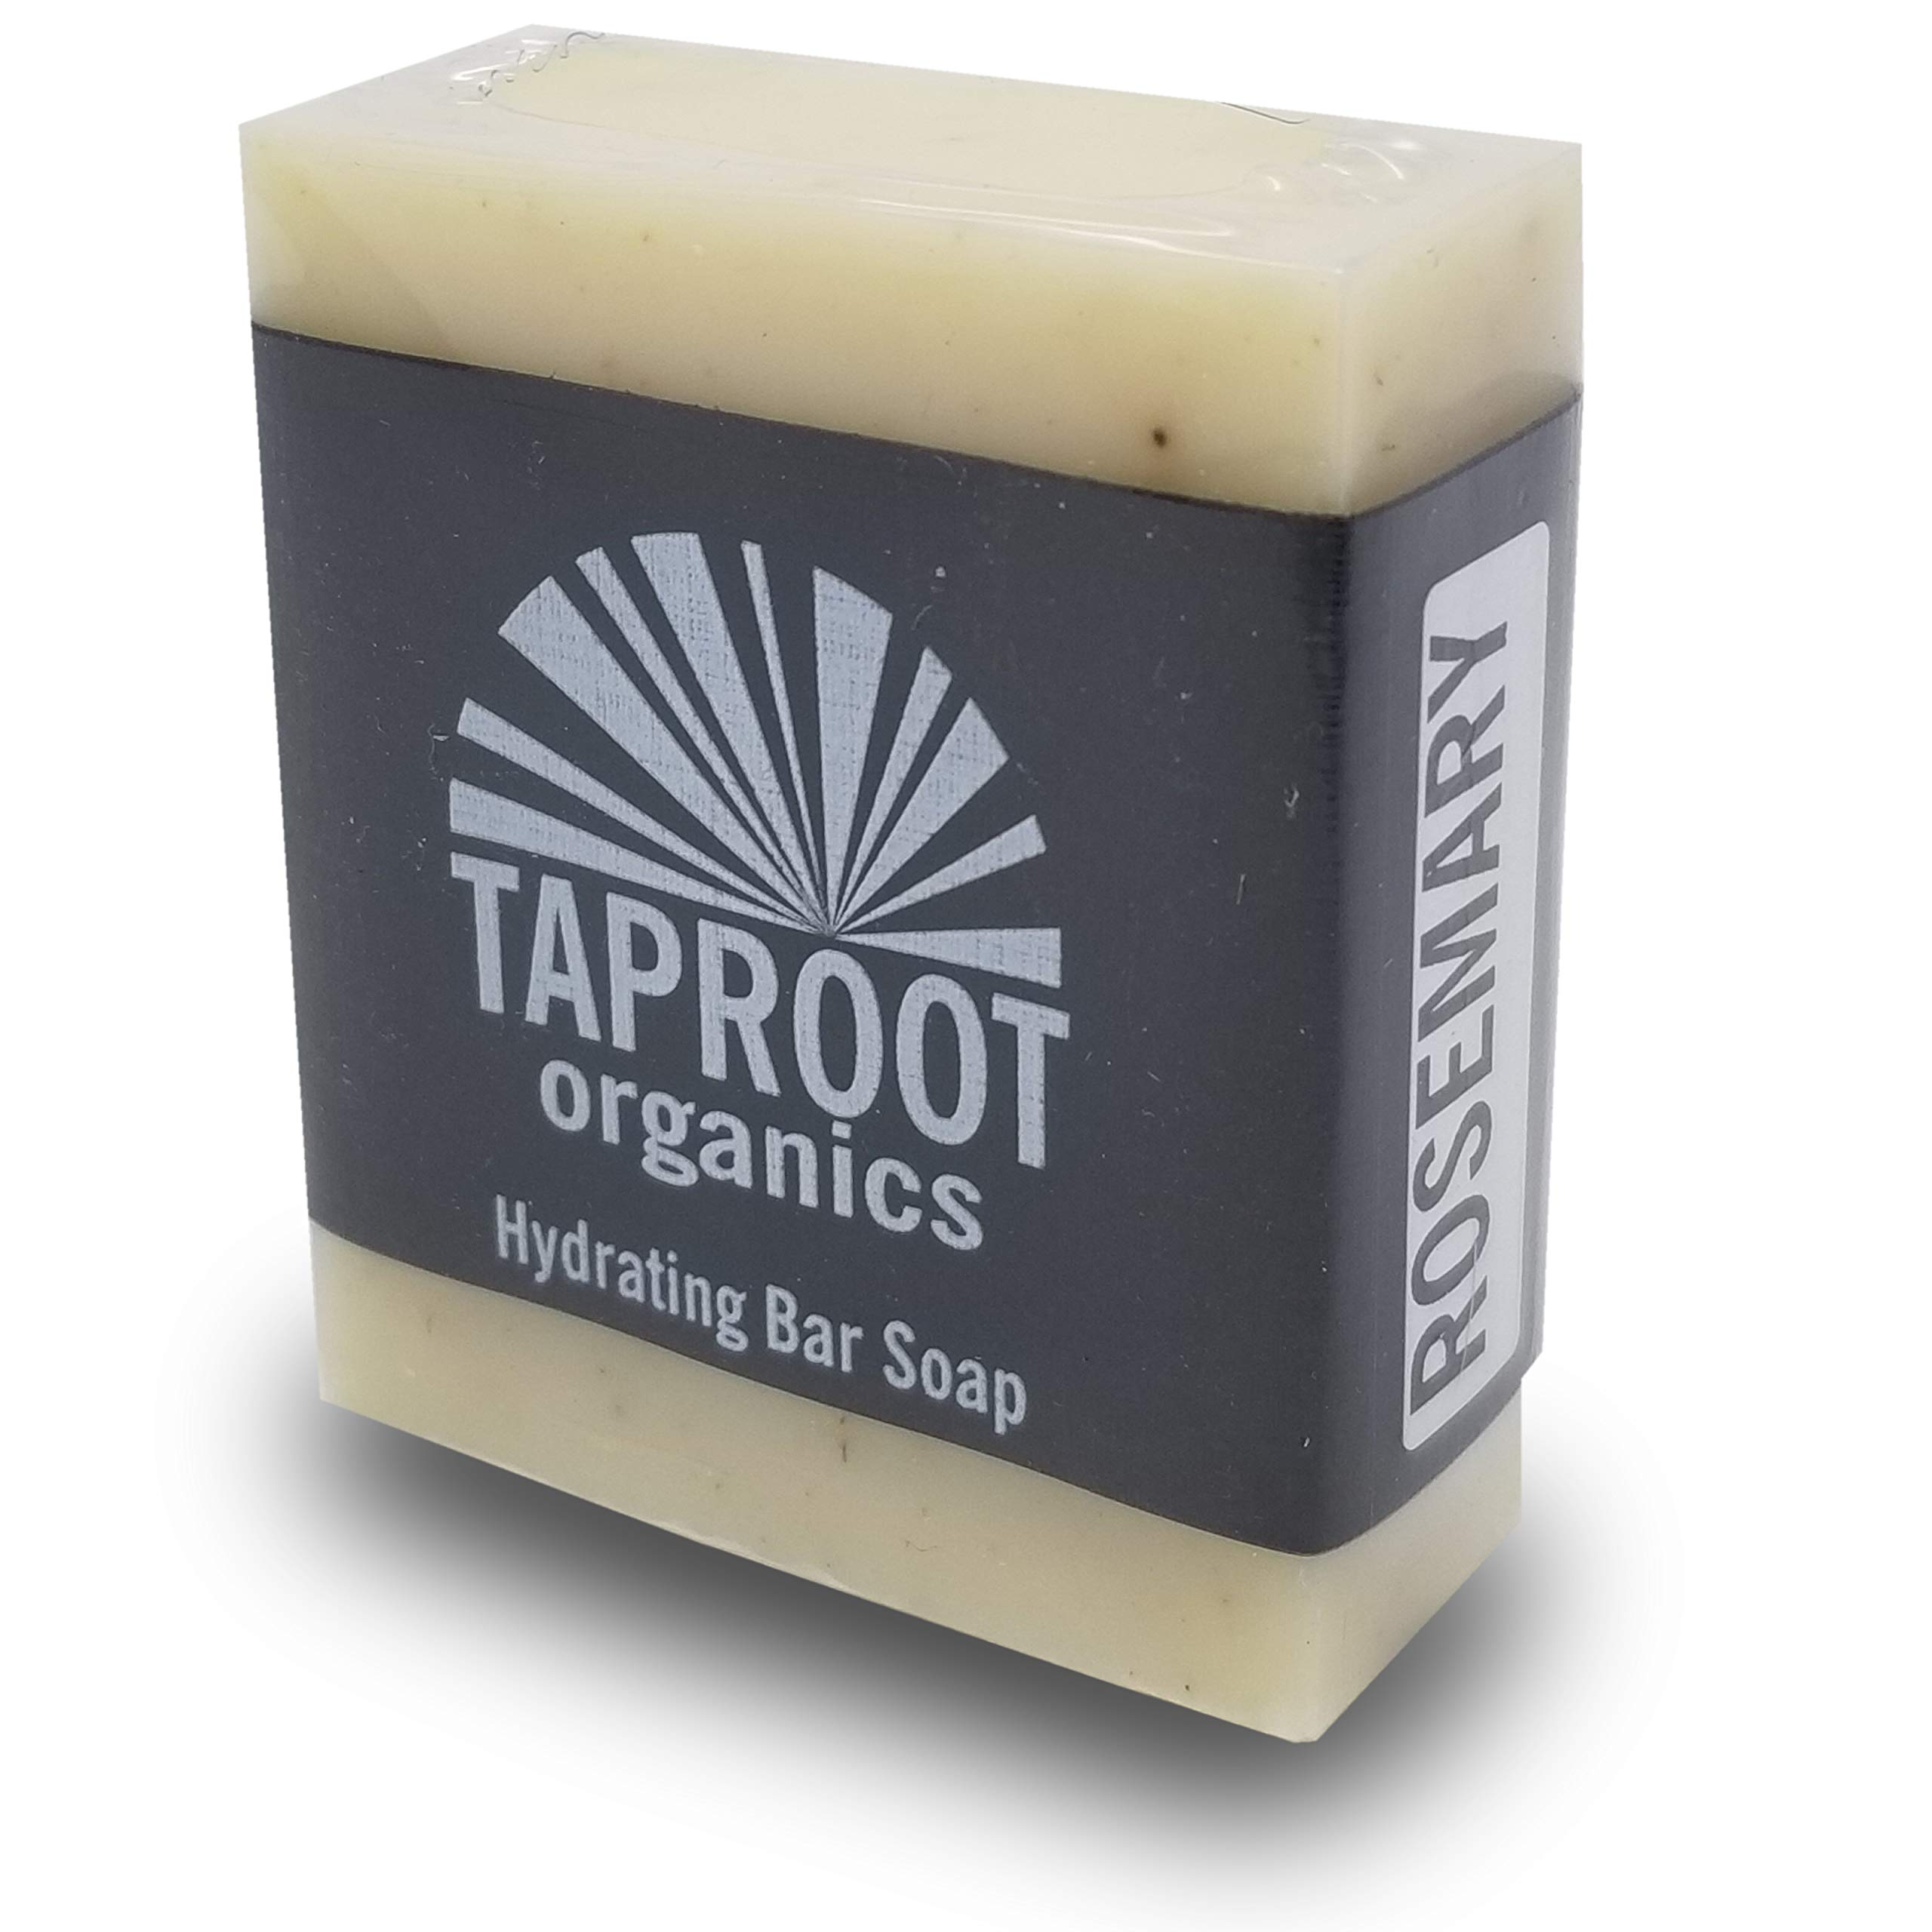 TAPROOT ORGANICS - Rosemary Cold Process Bar Soap for maintaining Healthy Clear Skin for face and body. Culinary Organic Lavender for a mild Biodegradable Scrub for the entire family (Vegan)